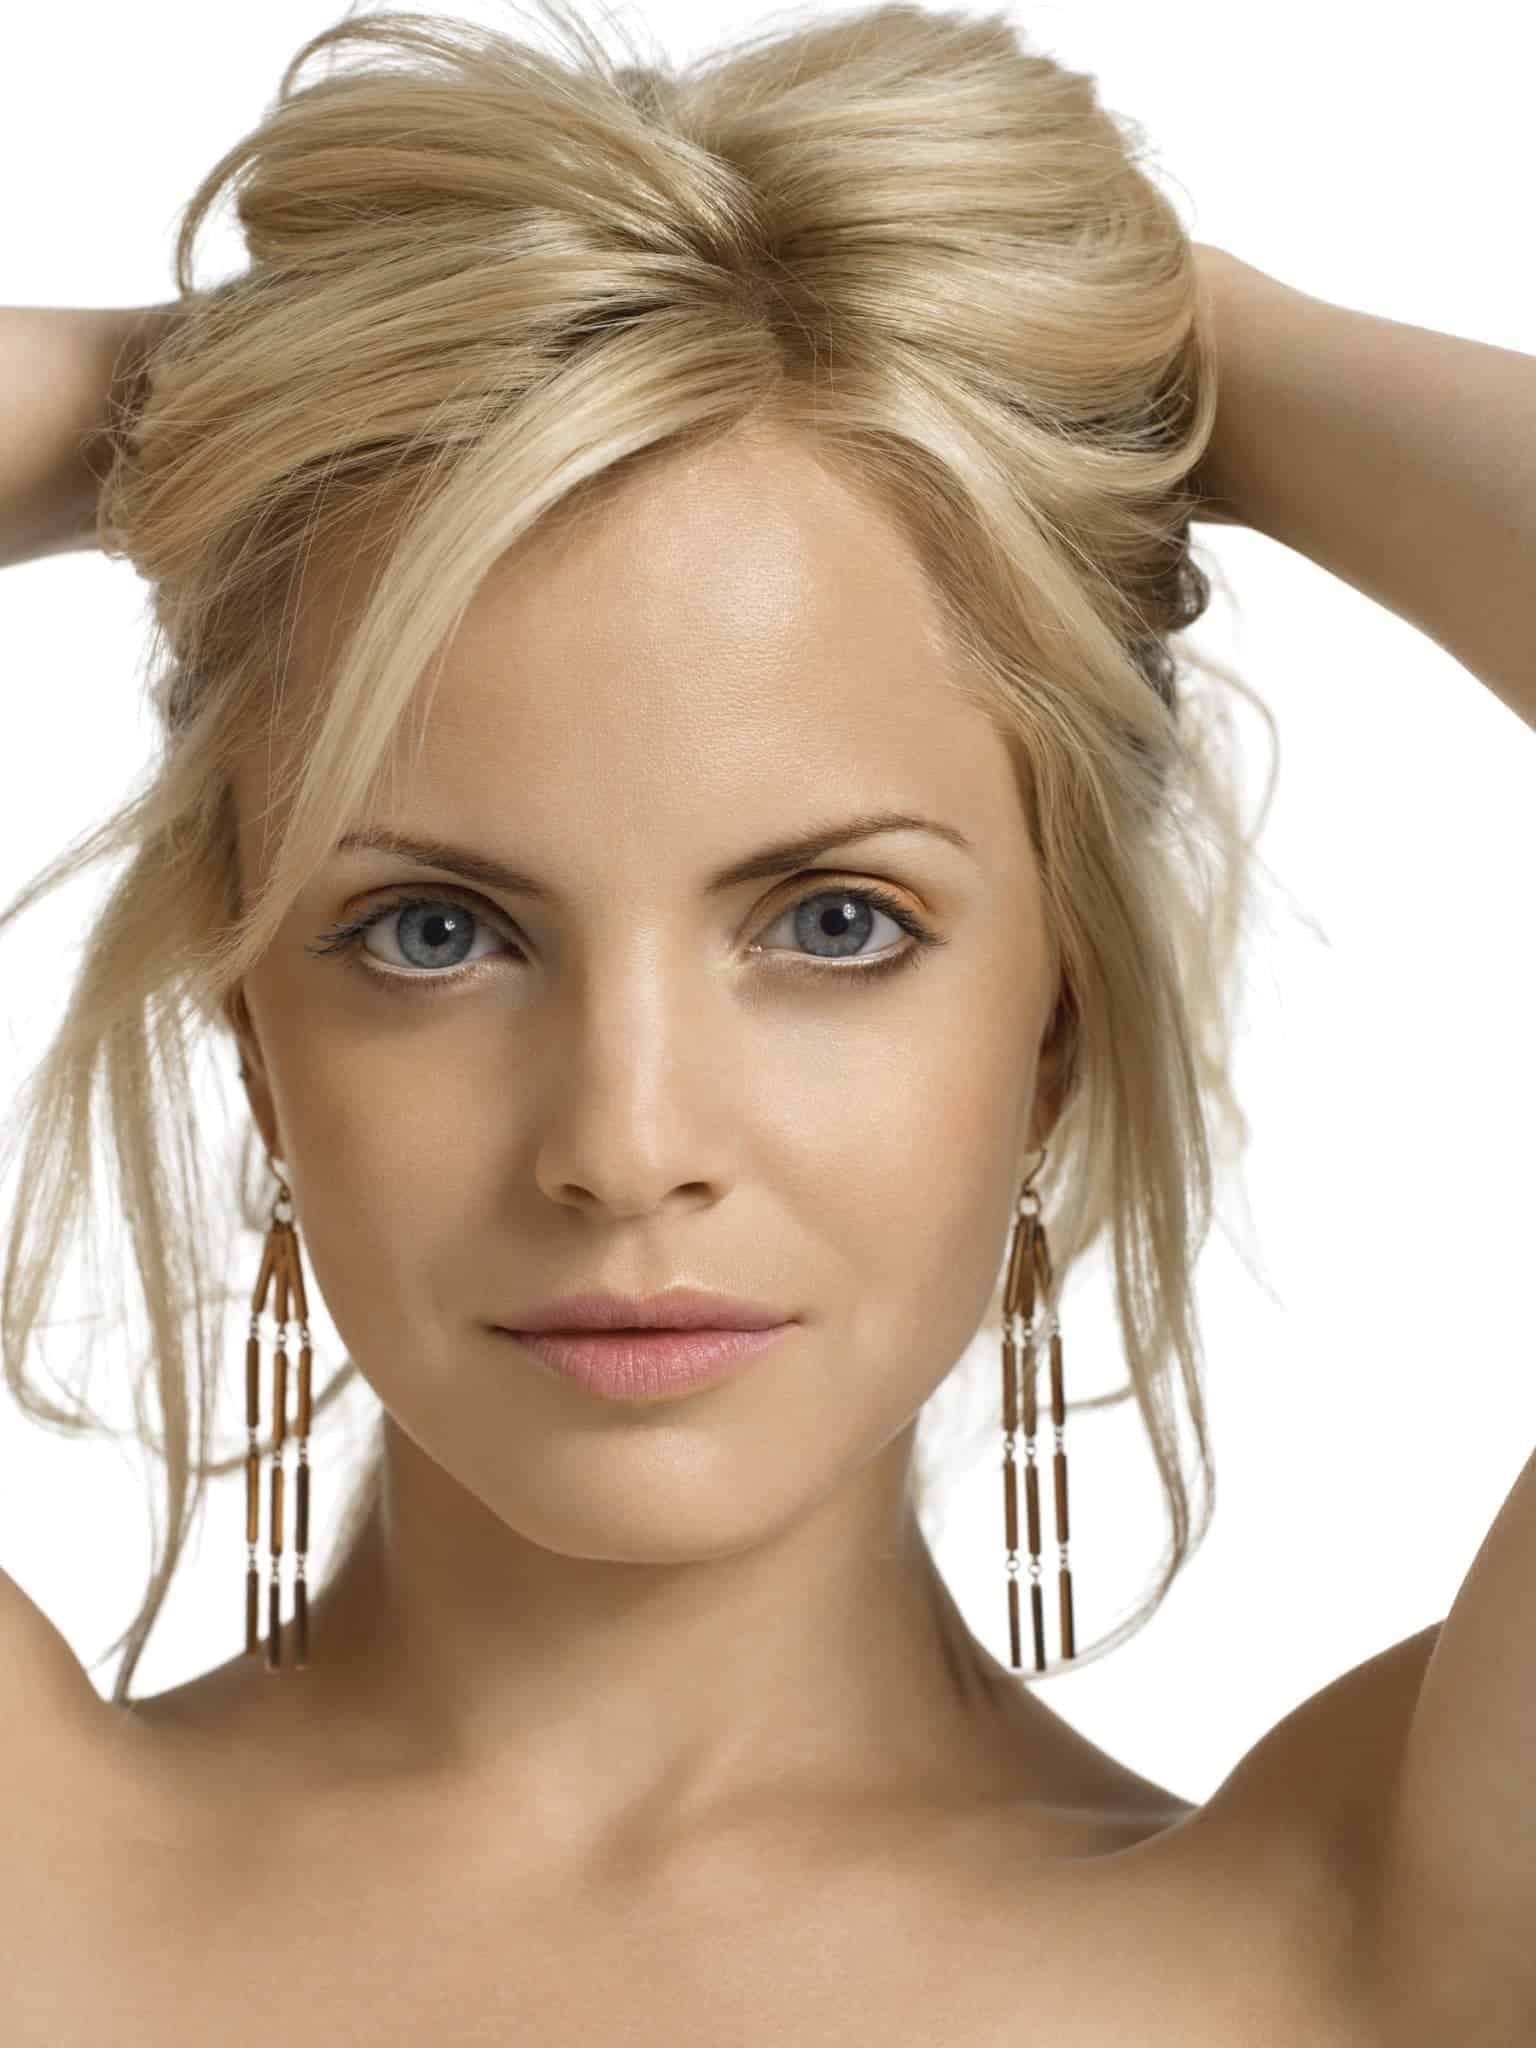 Short blonde hairstyles for sexy women